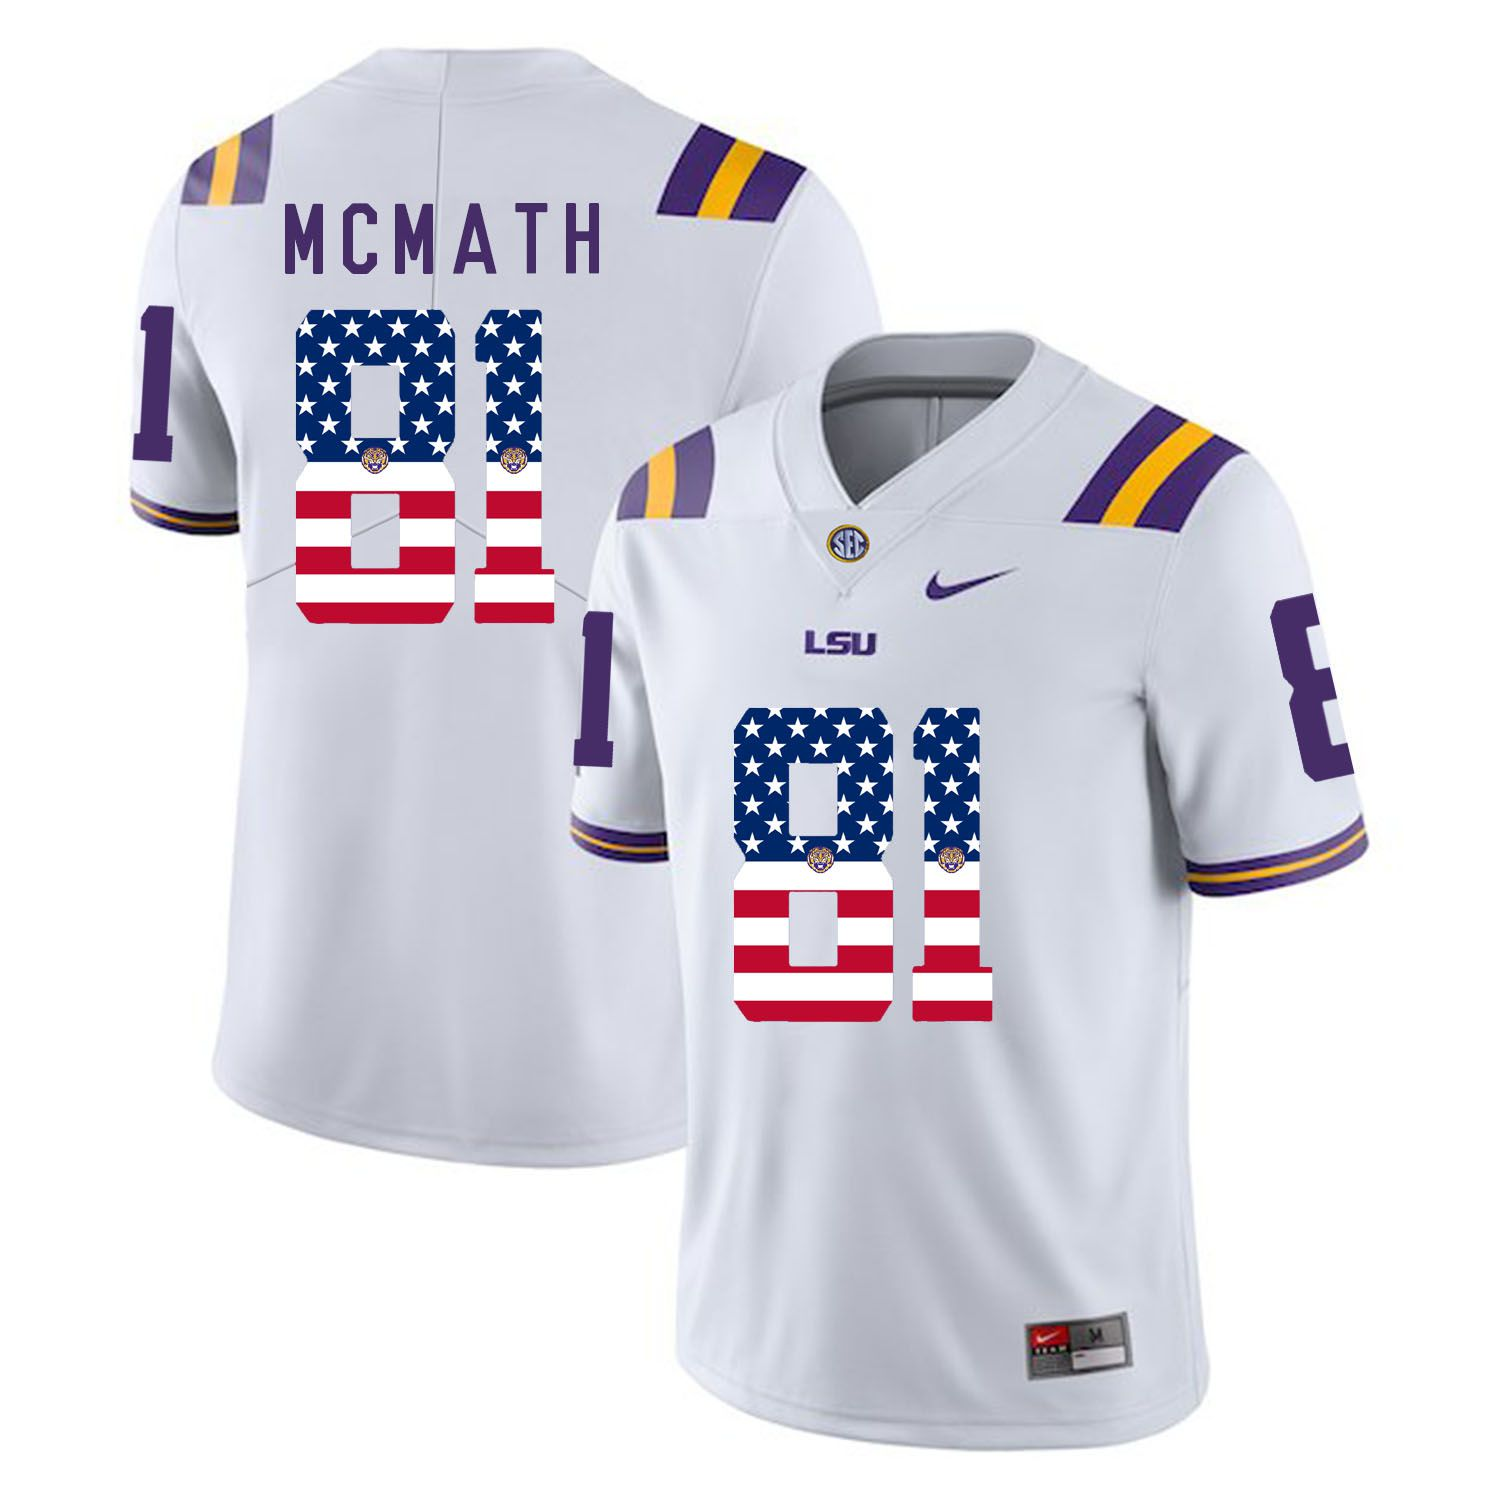 Men LSU Tigers 81 Mcmath White Flag Customized NCAA Jerseys